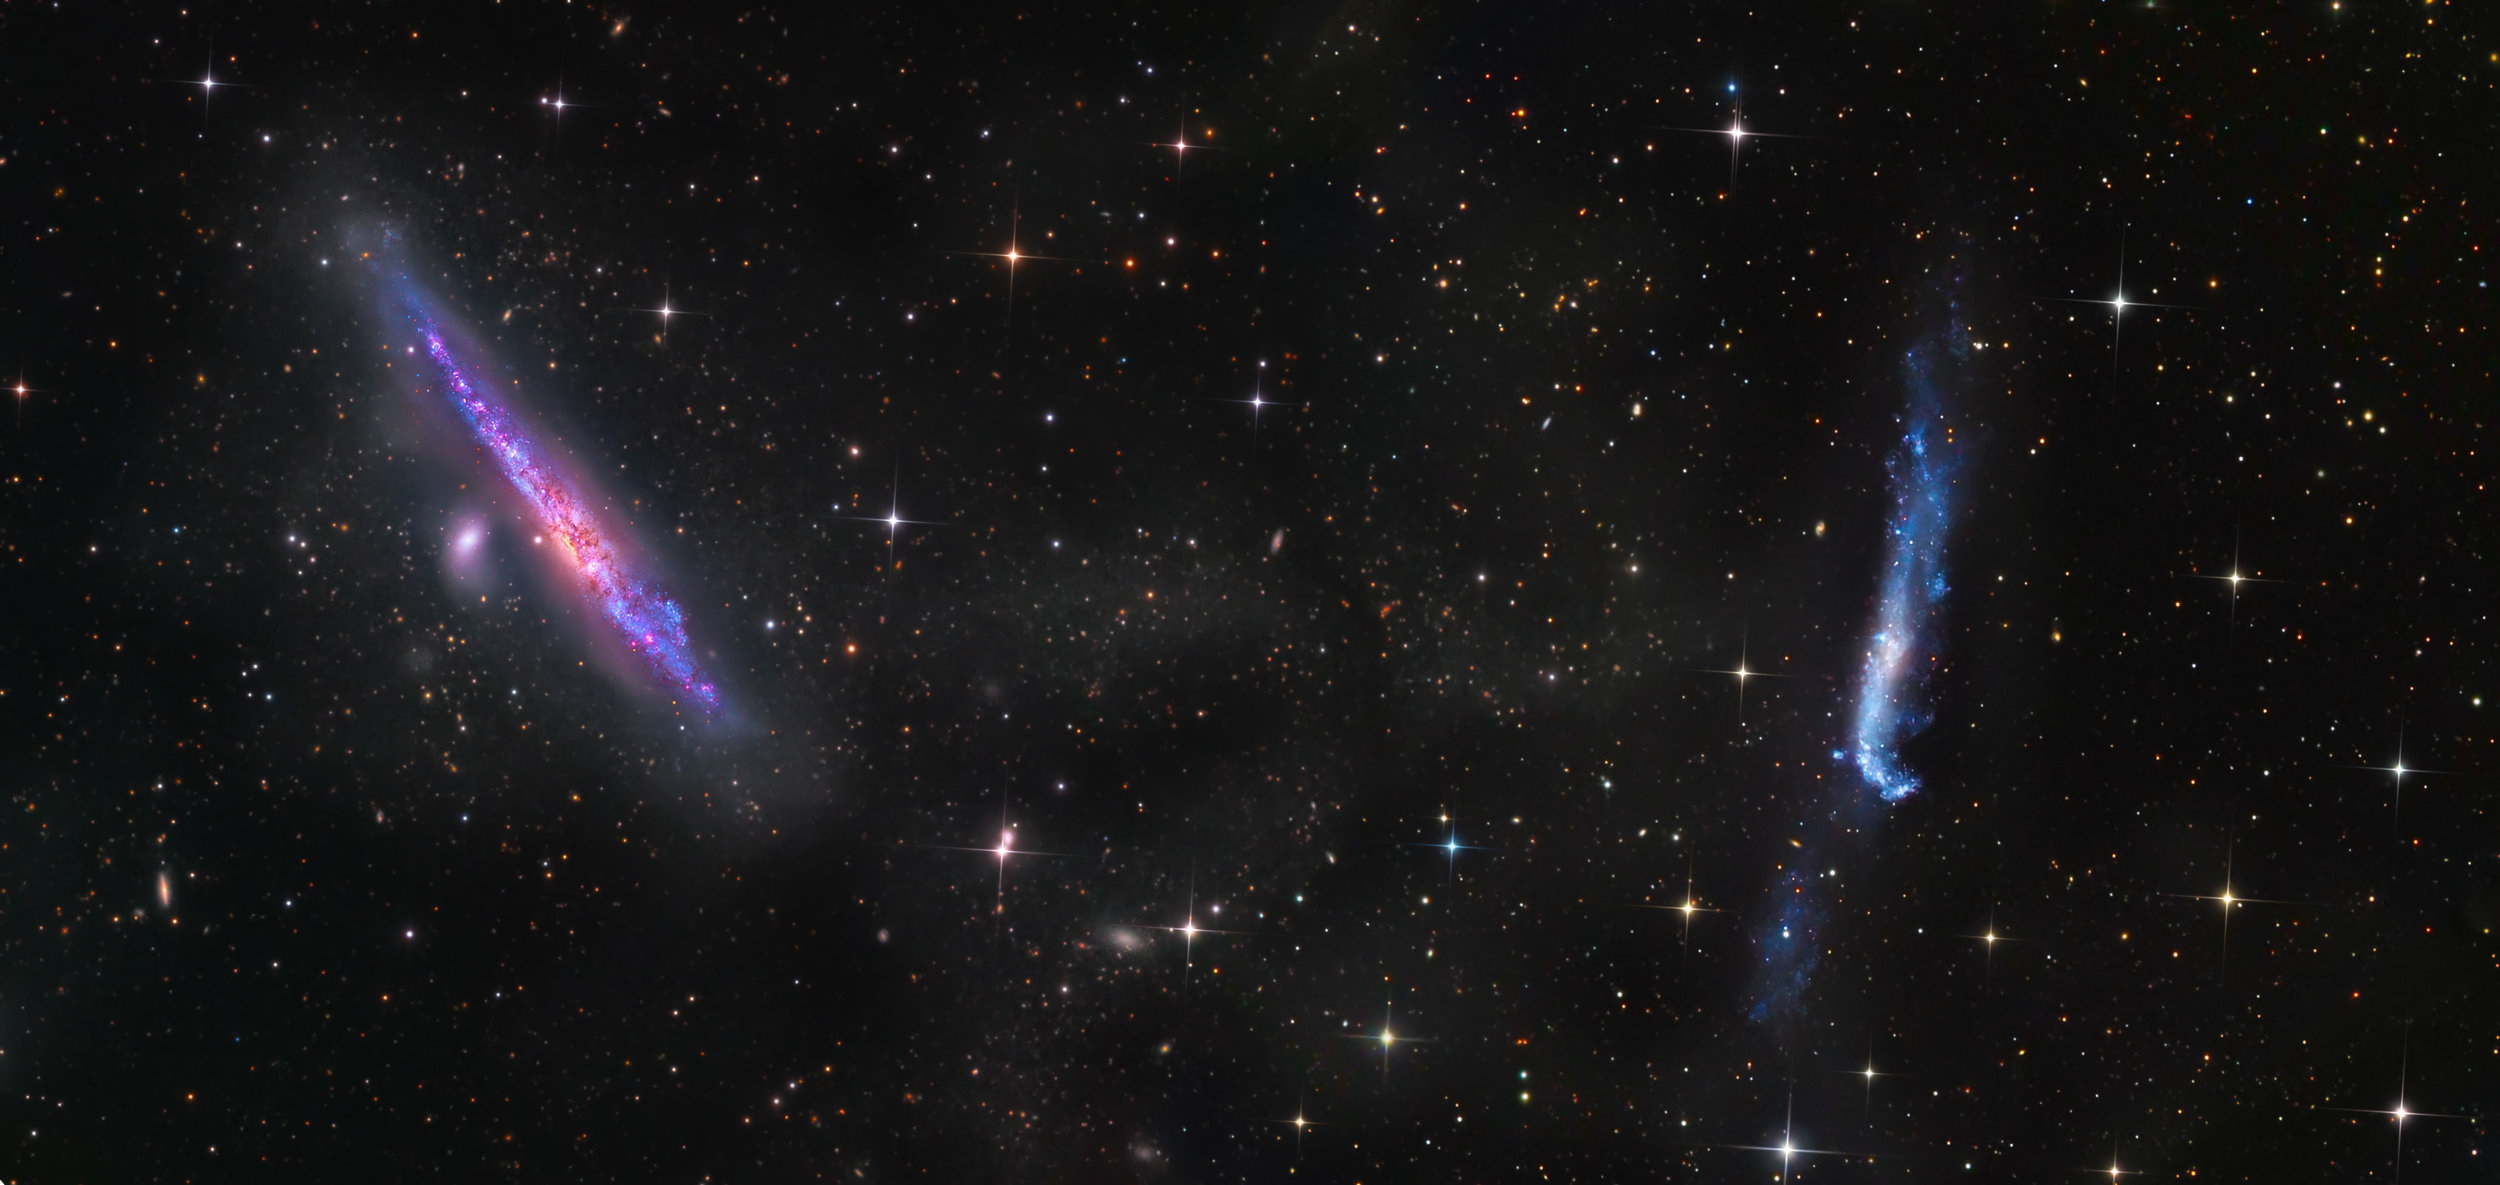 APOD: NGC 3621: The Whale Galaxy June, 3 2016